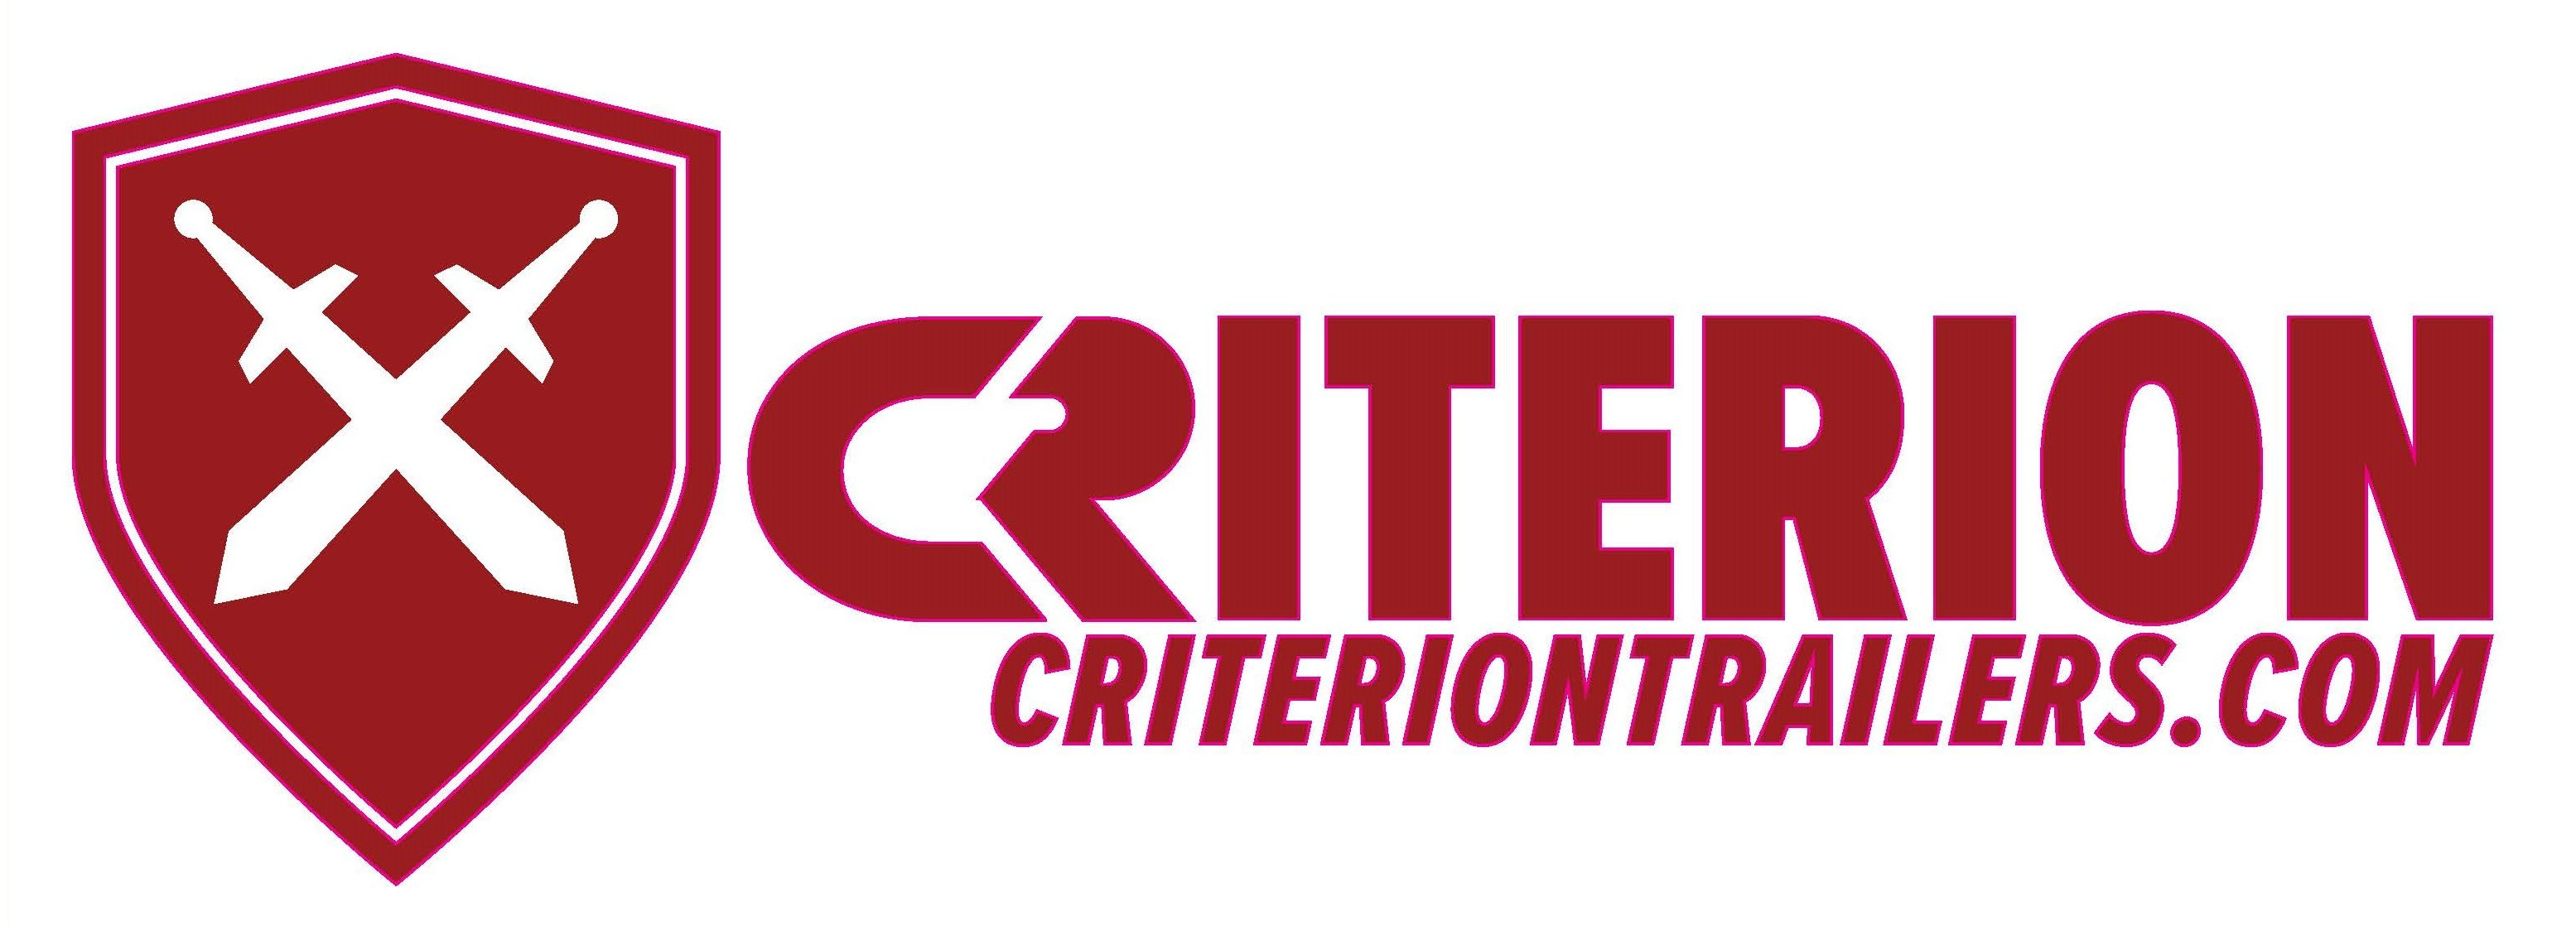 Criterion Trailers LLC